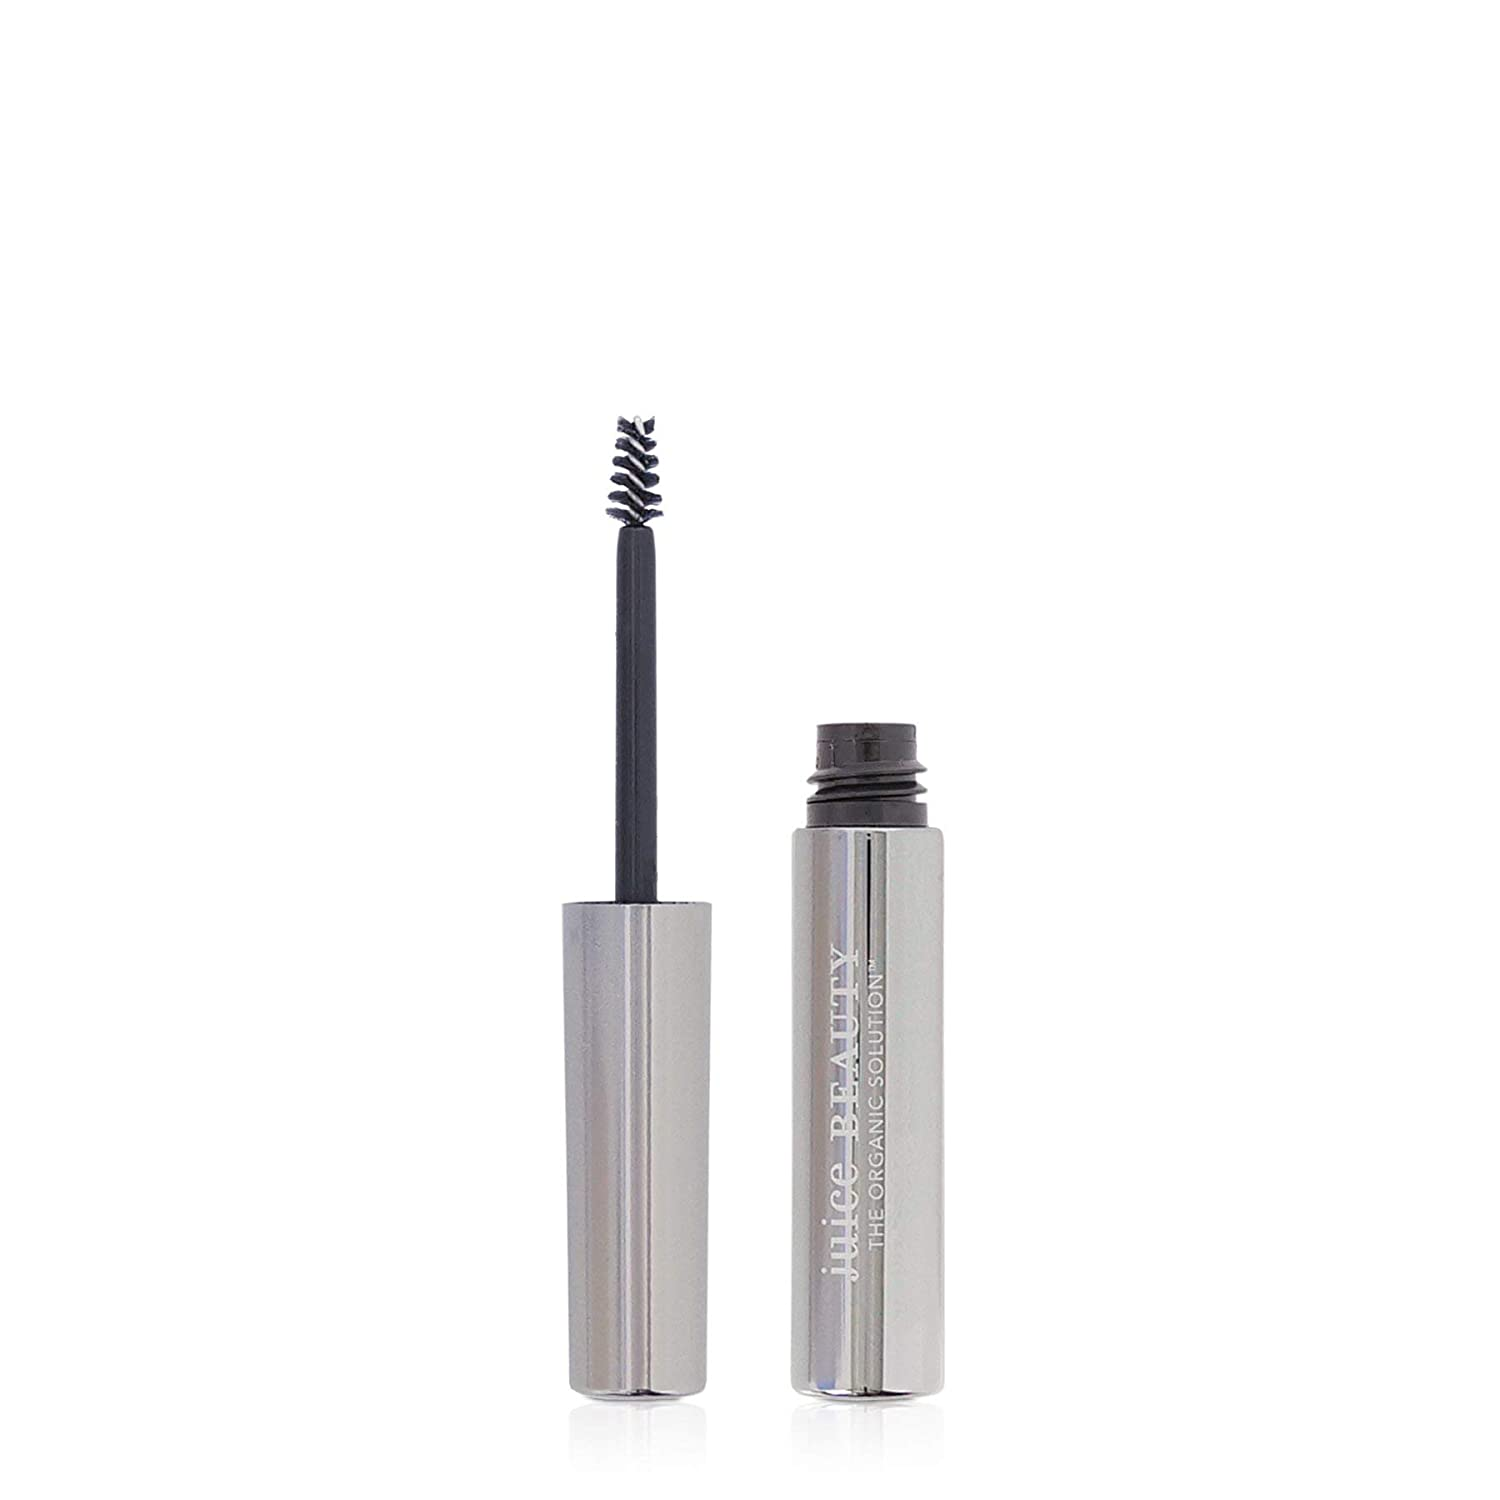 Juice Beauty Phyto-Pigments Brow